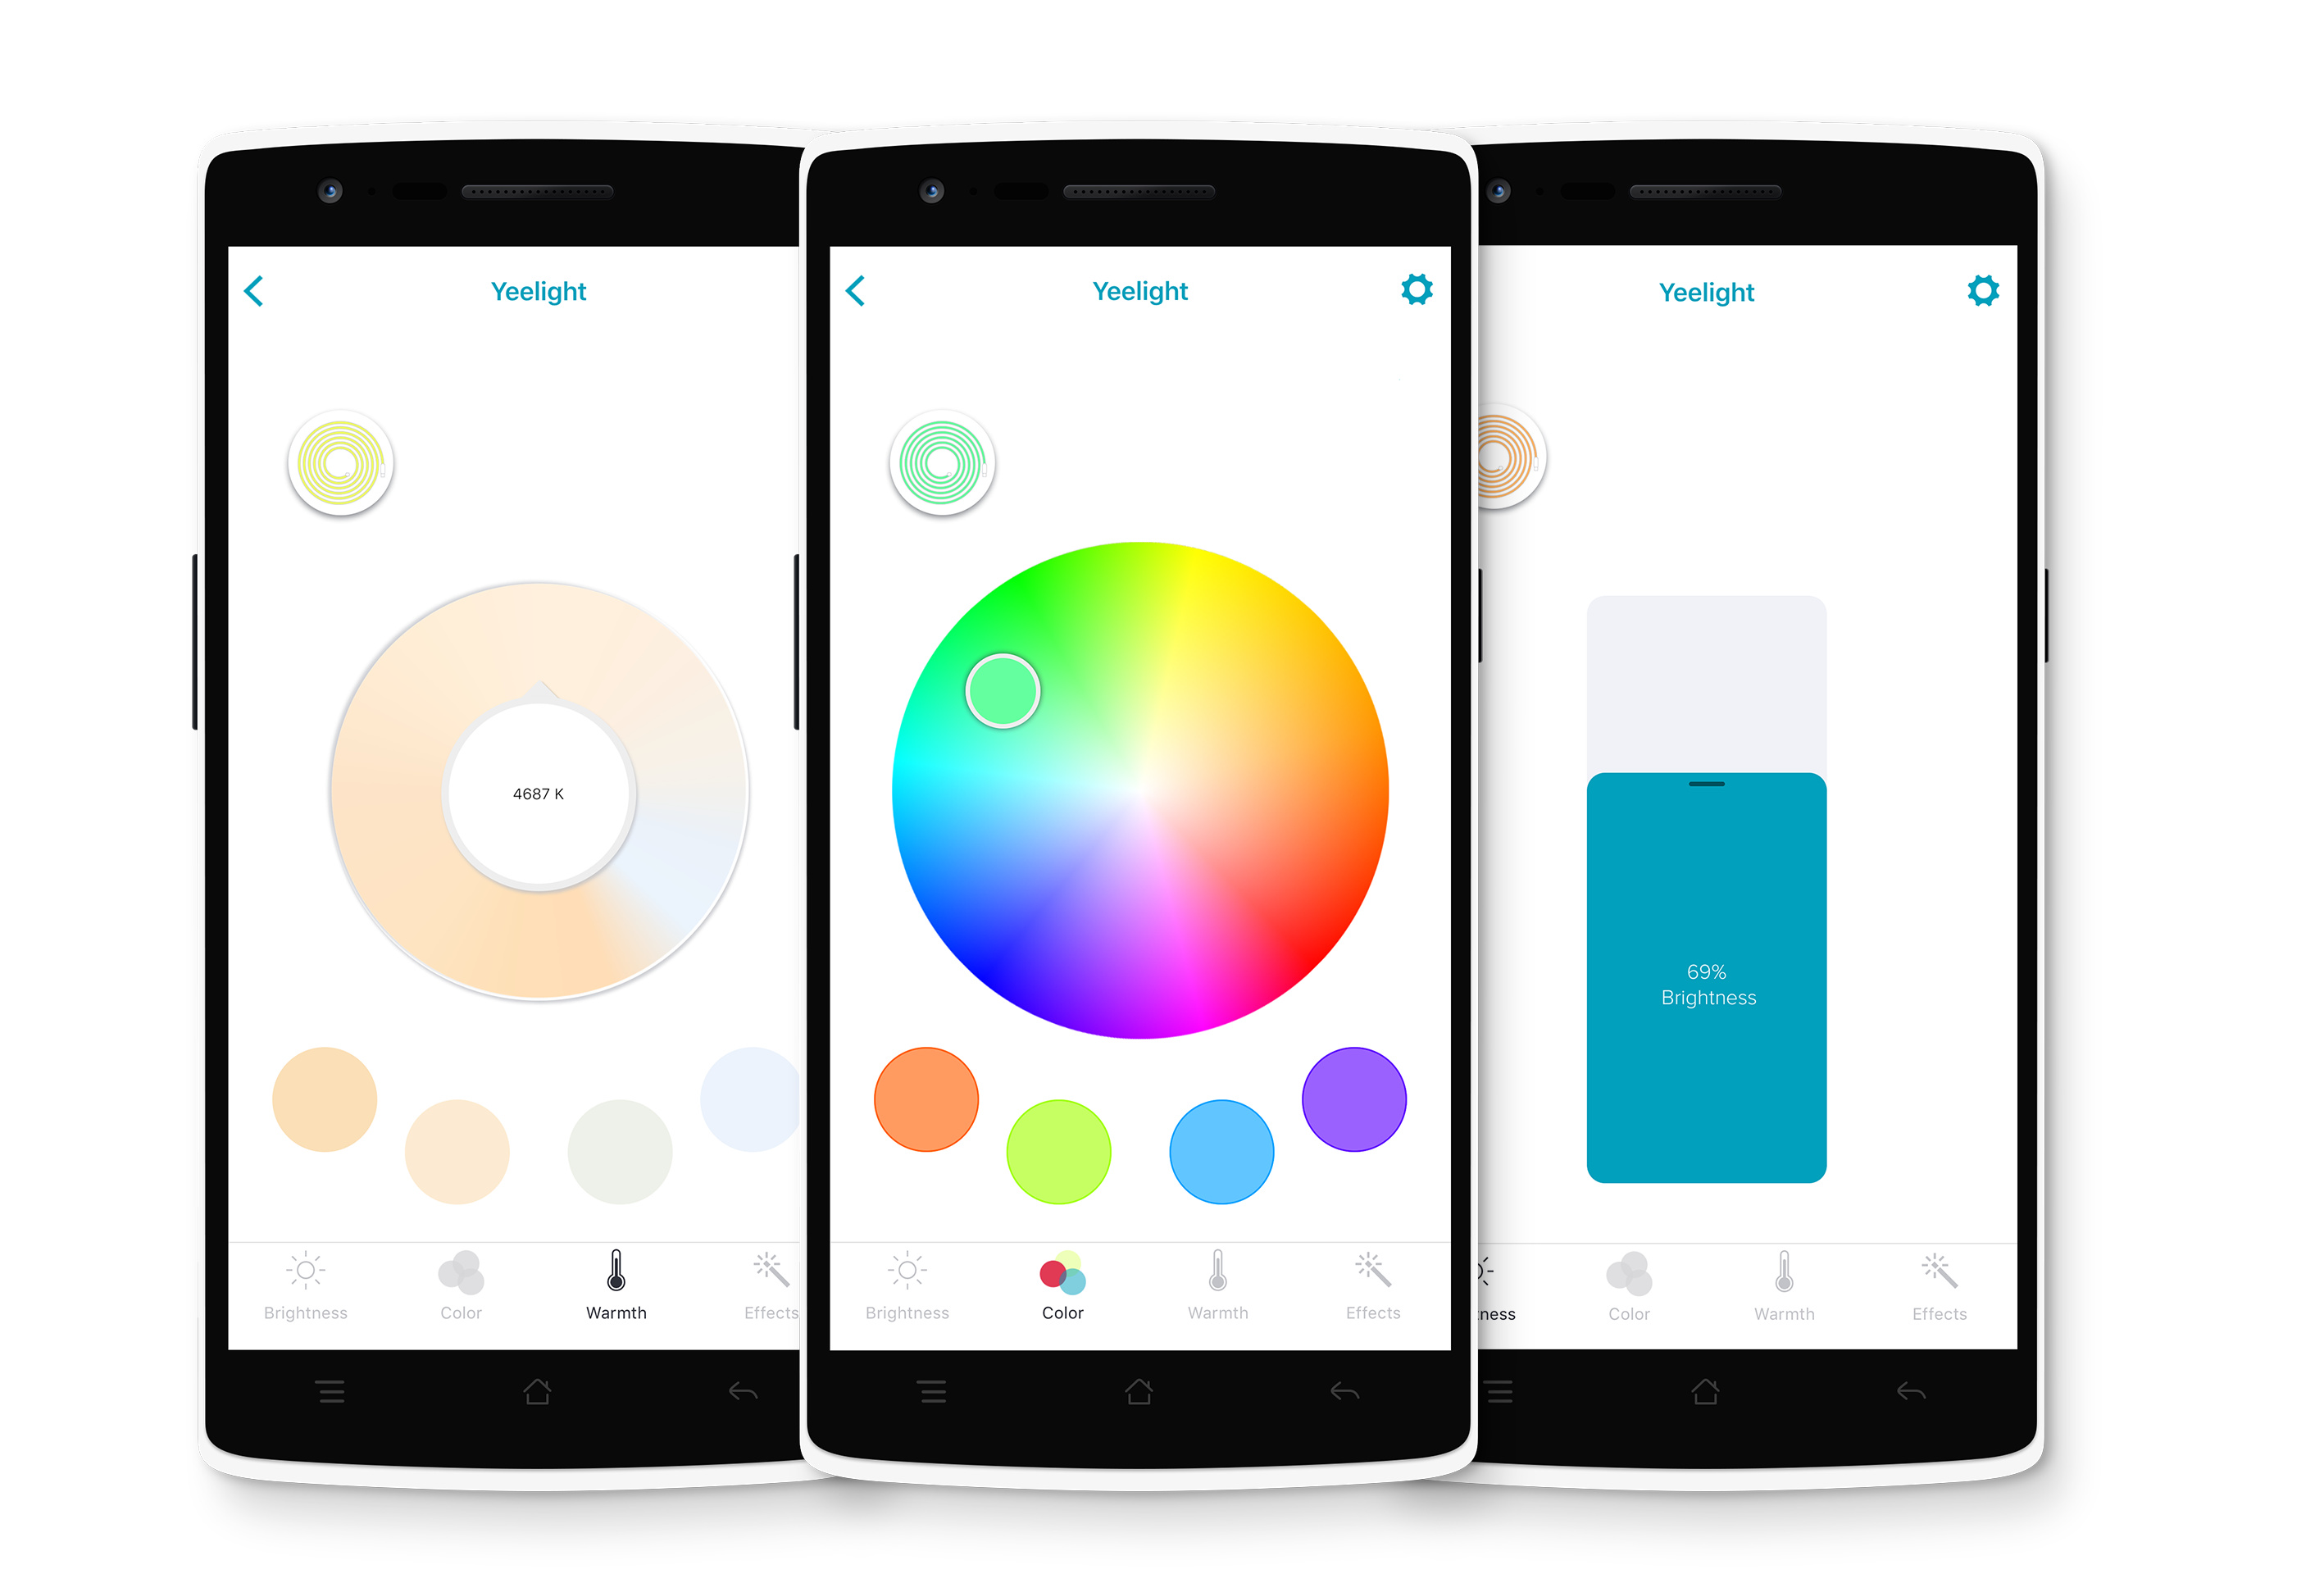 Update] Yeti, a new app to control Yeelight - Third Party